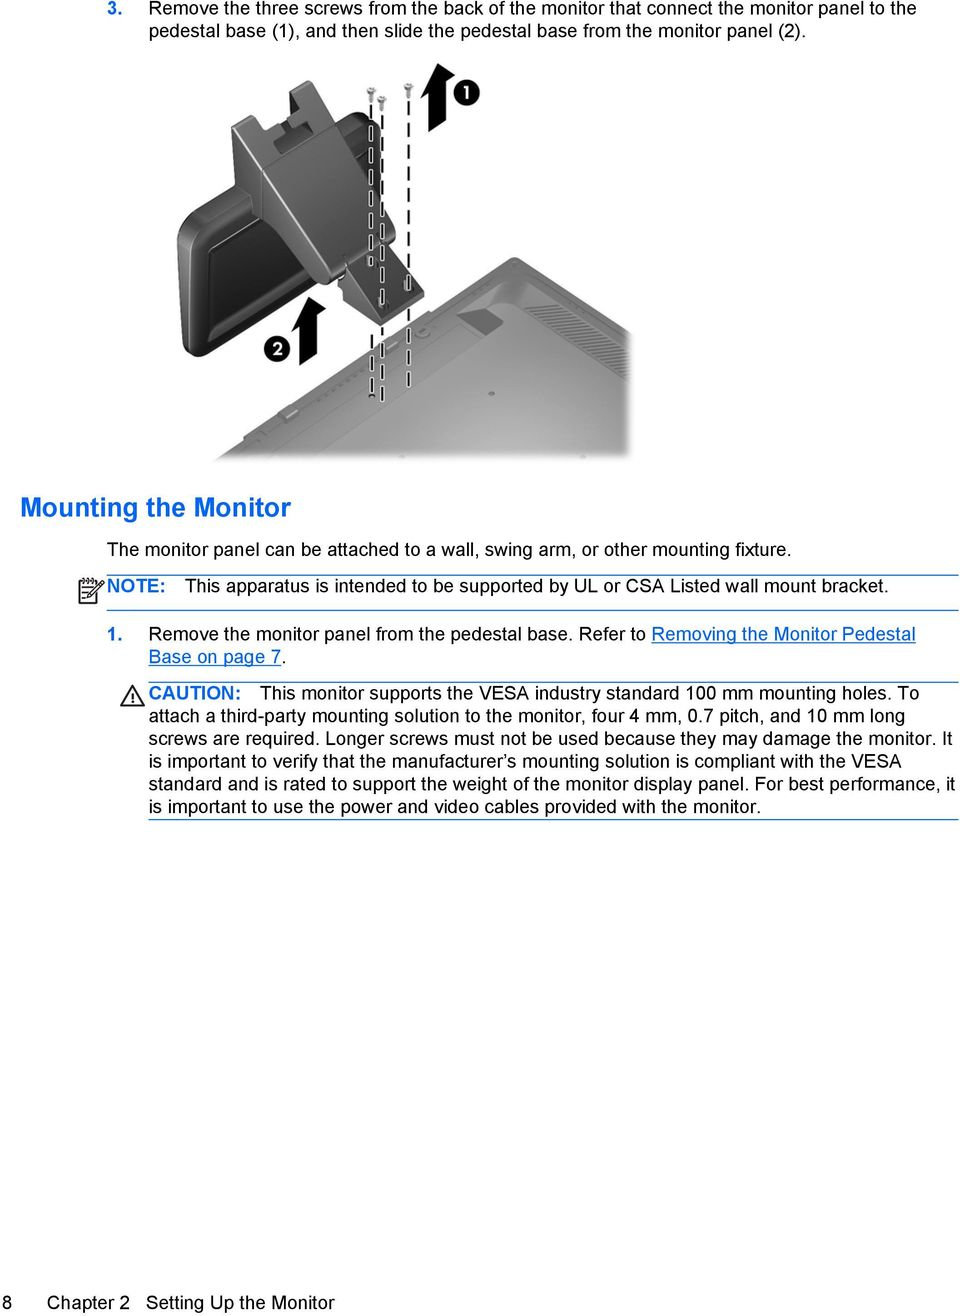 Remove the monitor panel from the pedestal base. Refer to Removing the Monitor Pedestal Base on page 7. CAUTION: This monitor supports the VESA industry standard 100 mm mounting holes.